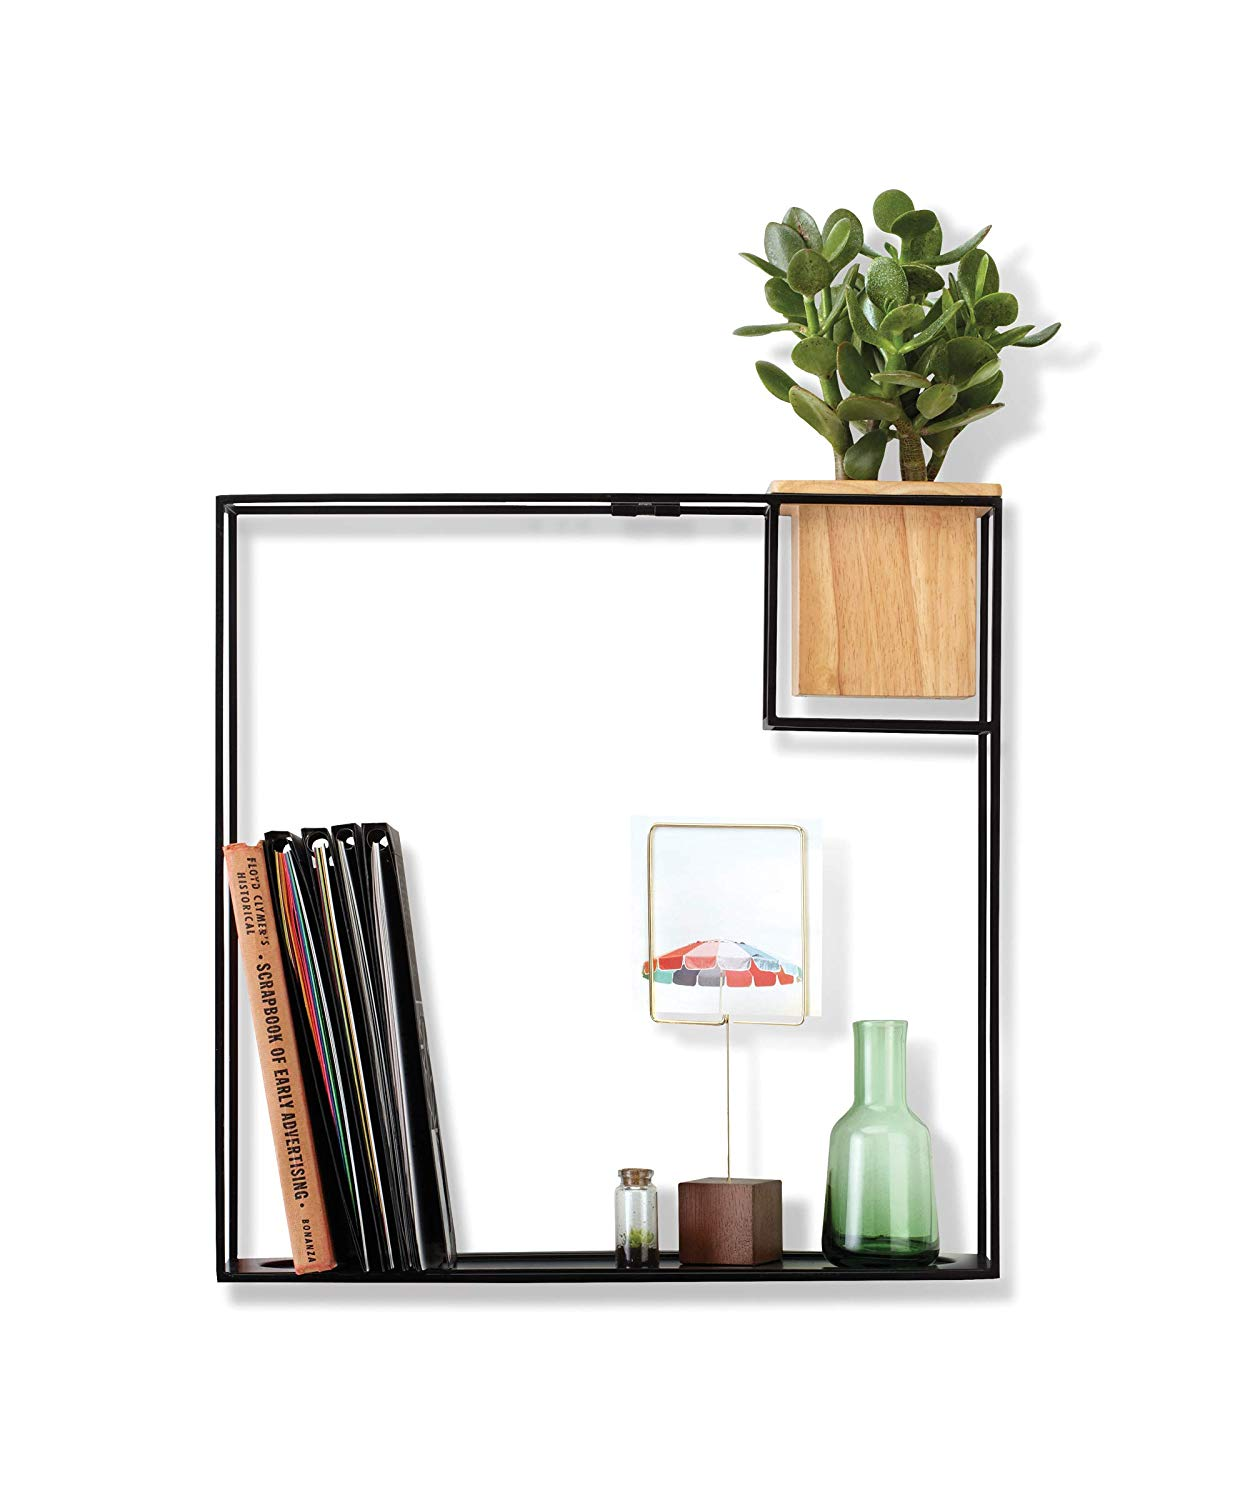 umbra cubist floating shelf with built succulent large black shelves planter modern wall decor and geometric display for books candles mementos small kitchen storage round pantry